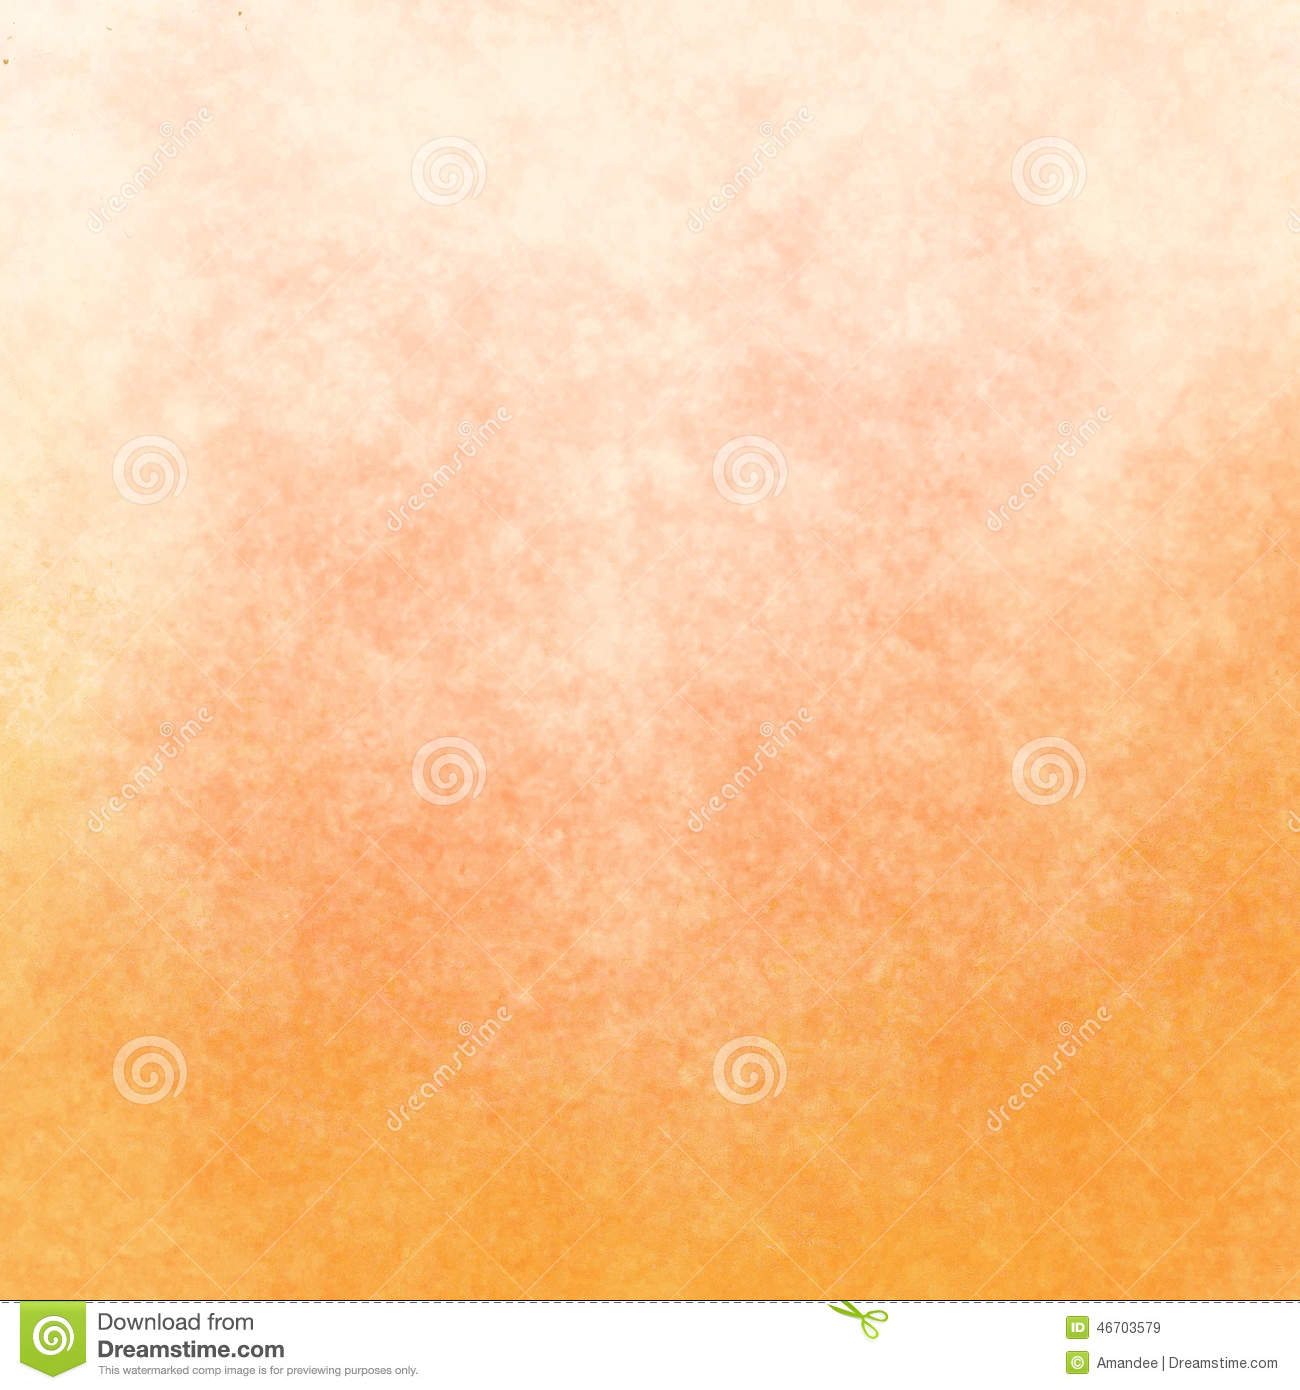 Soft Orange Color Gradient Soft Yellow To Orange Color Background With Texture